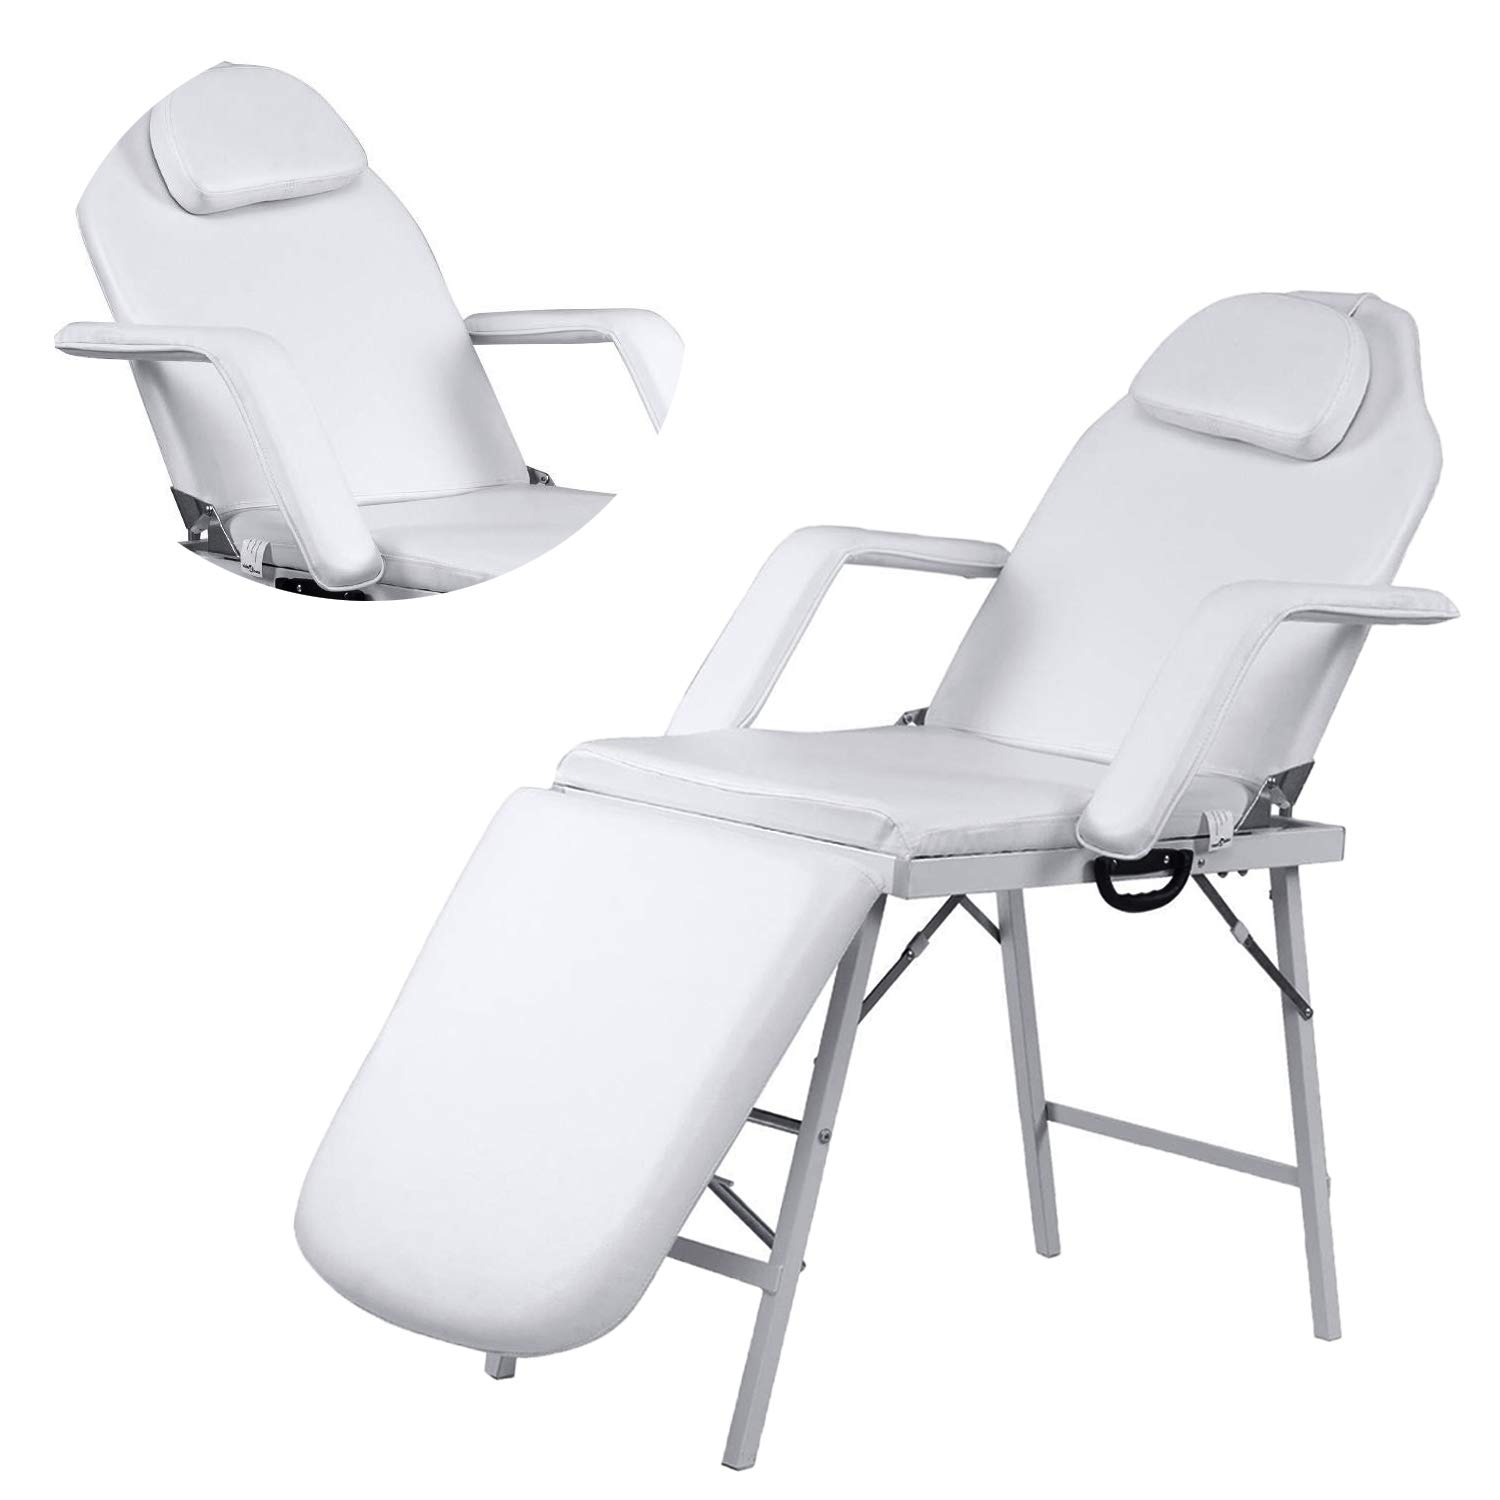 Adjustable Barber Spa Salon Massage Bed Facial Beauty Tattoo Chair White (73'') by Gentle Shower (Image #1)